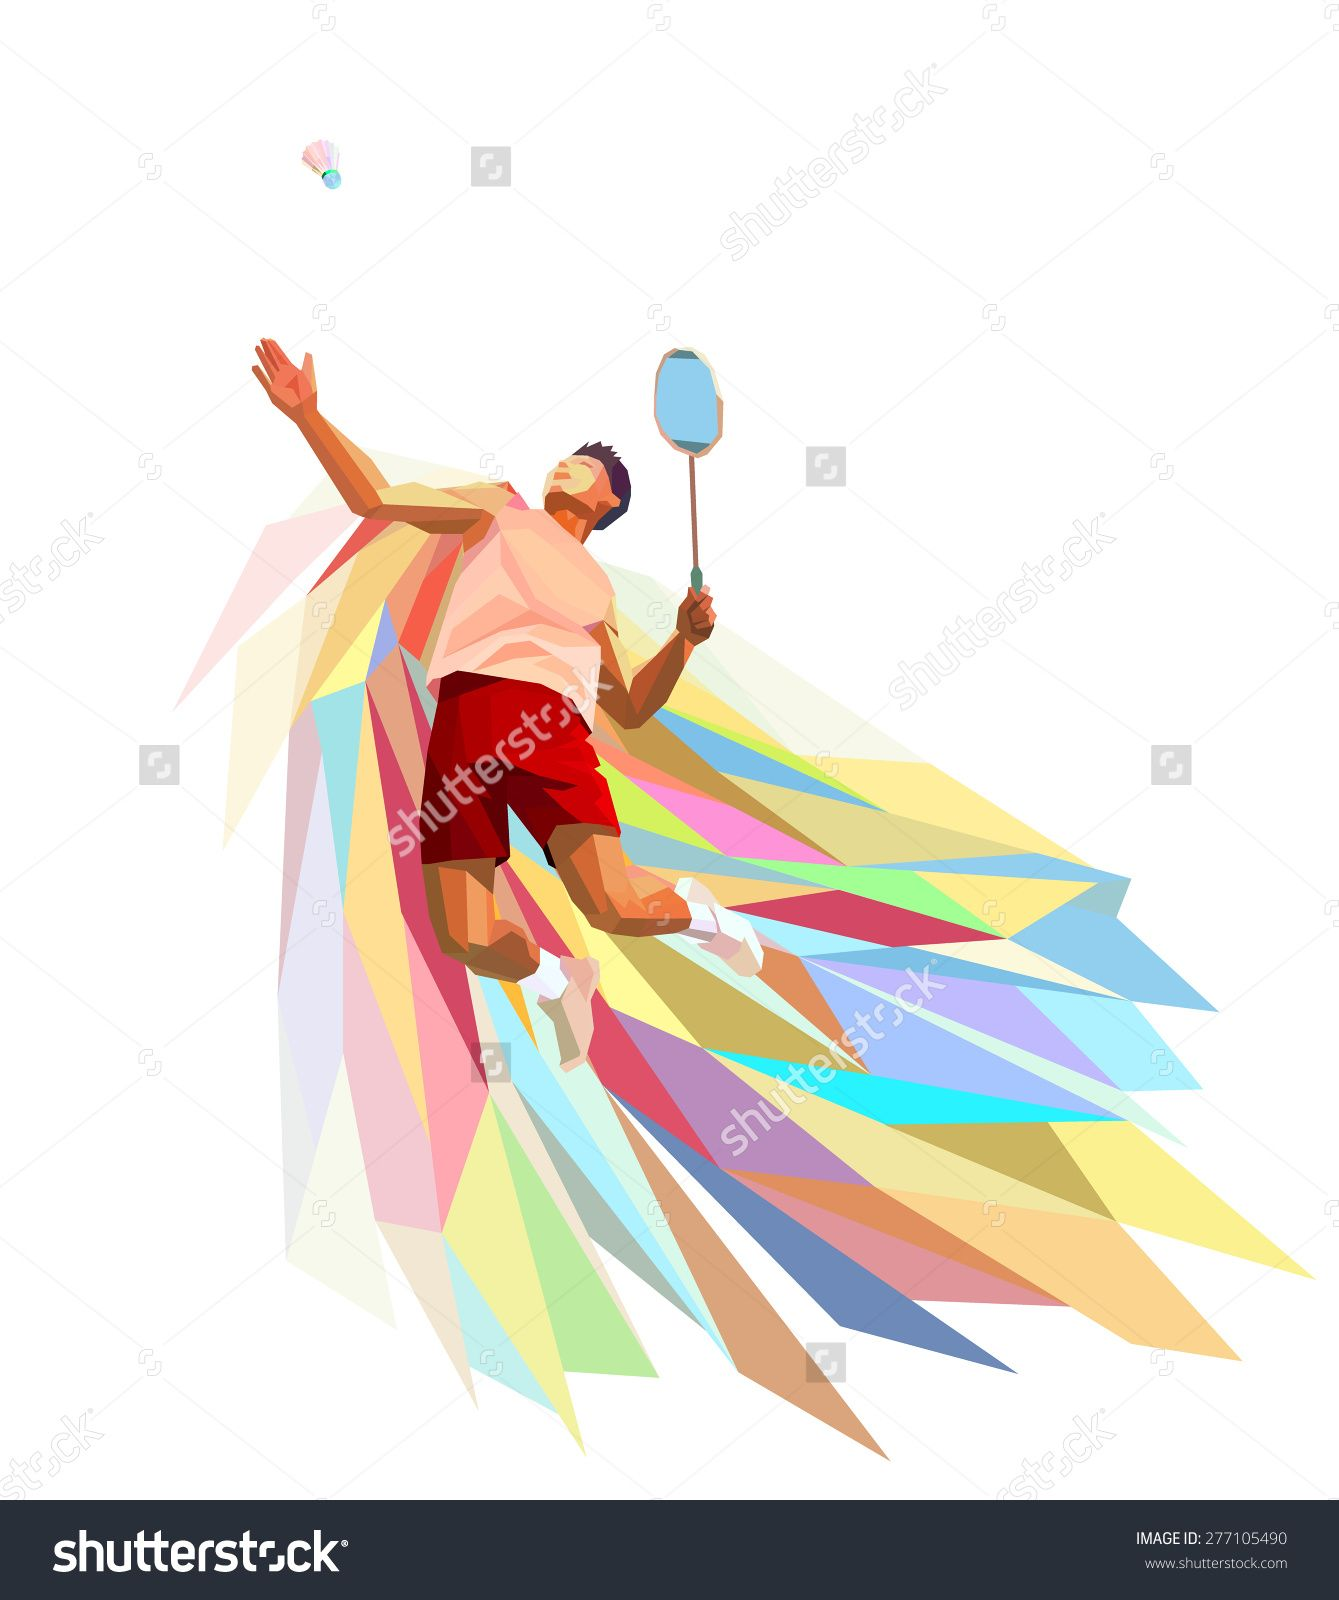 Polygonal geometric professional badminton player on